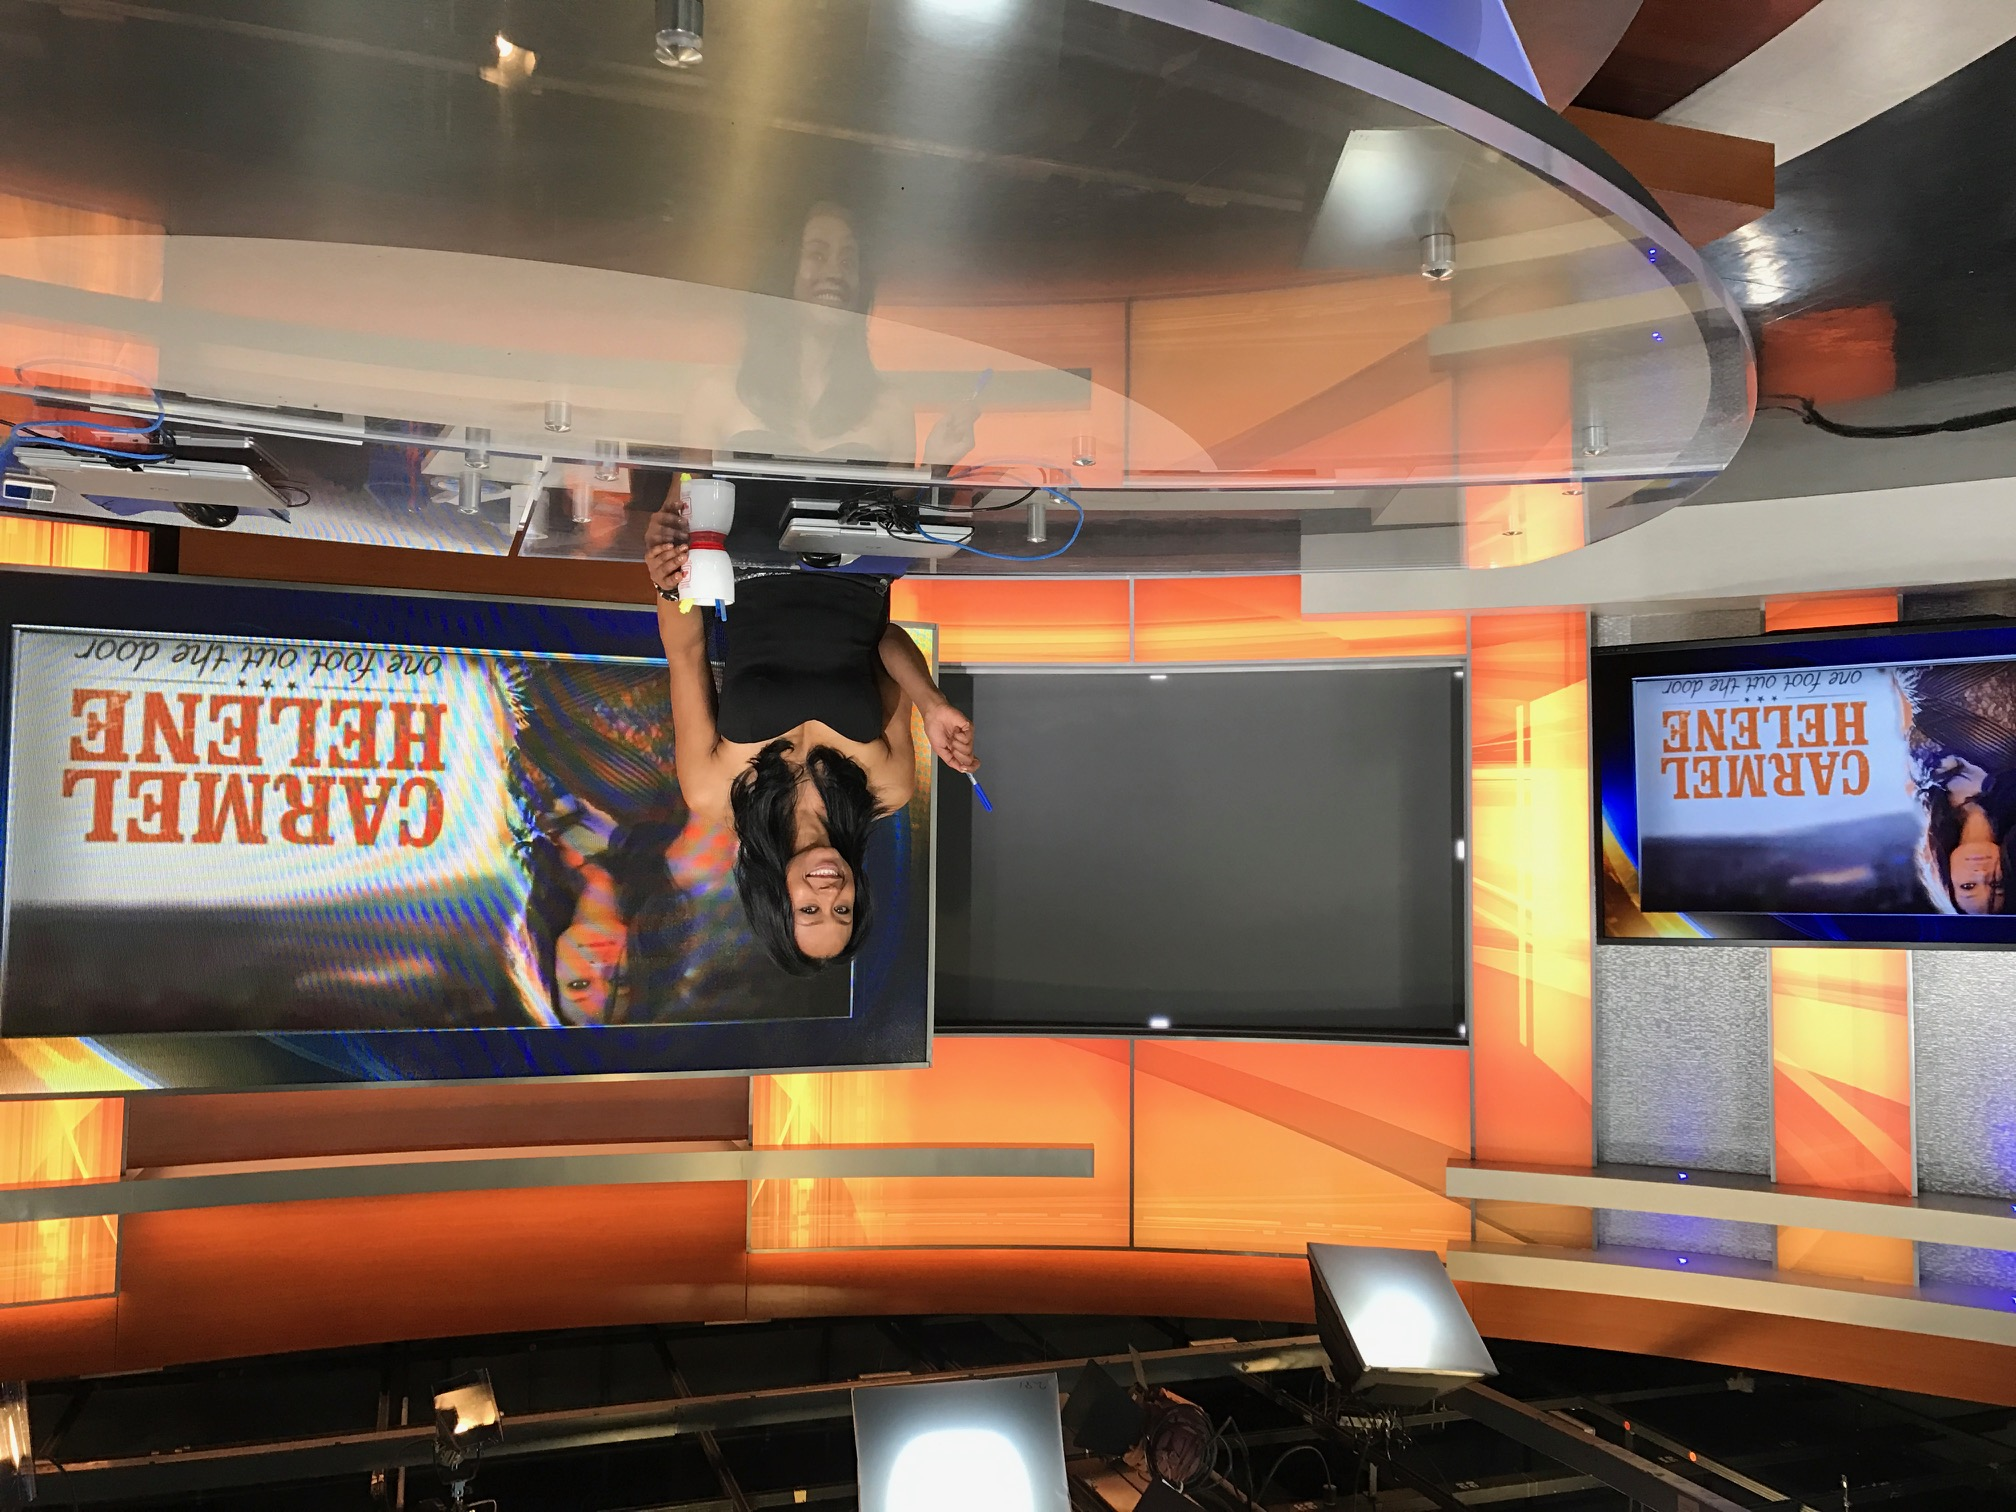 At the anchor desk